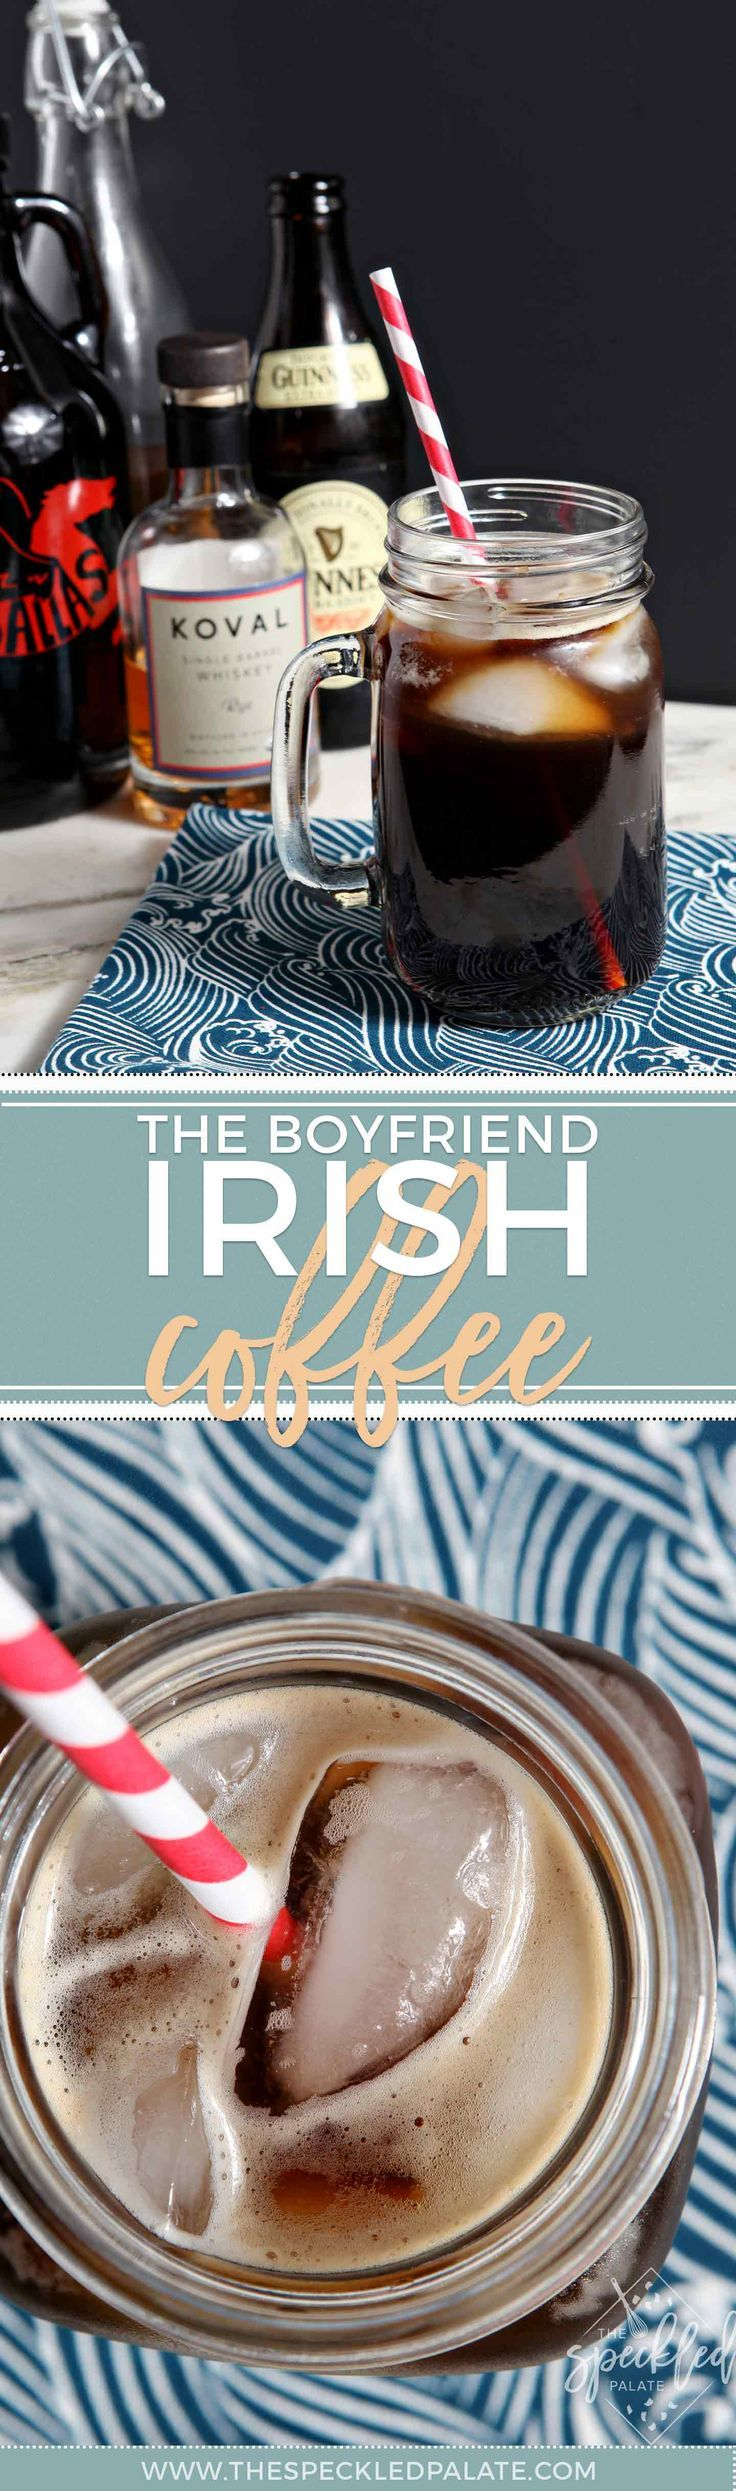 The Boyfriend Irish Coffee for St. Patrick's Day or National Coffee Day